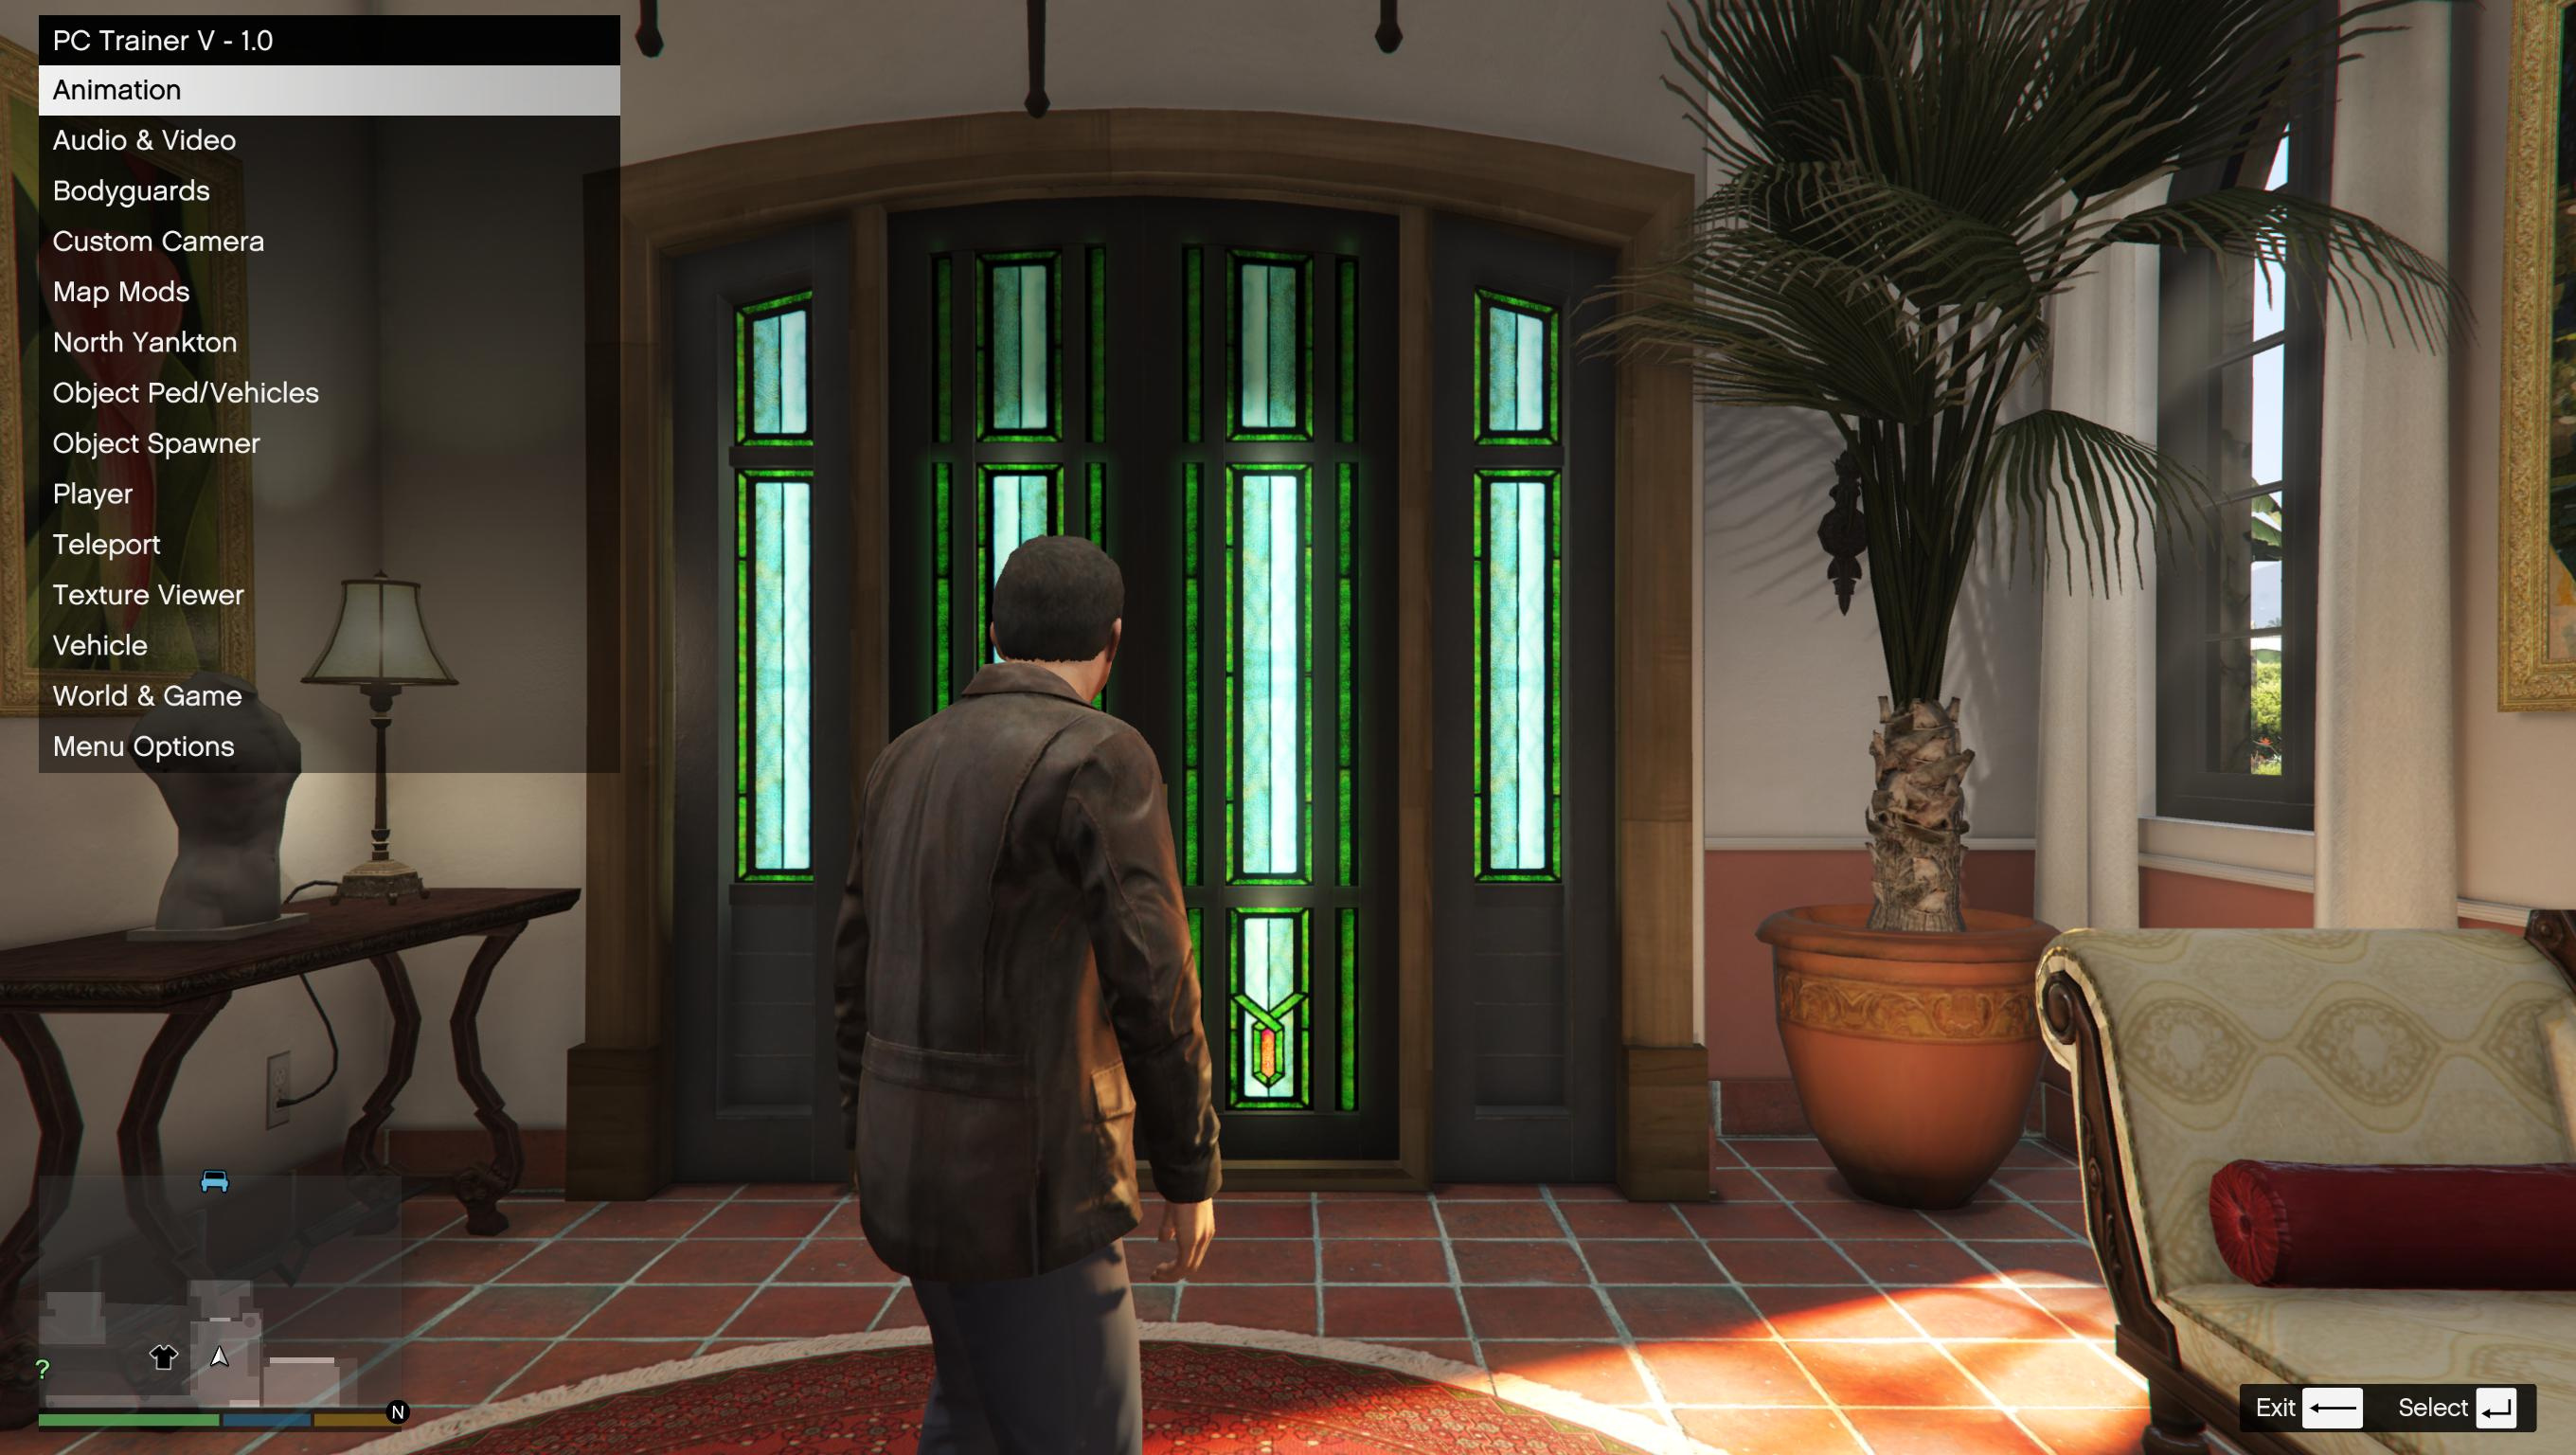 gta 5 key bindings download